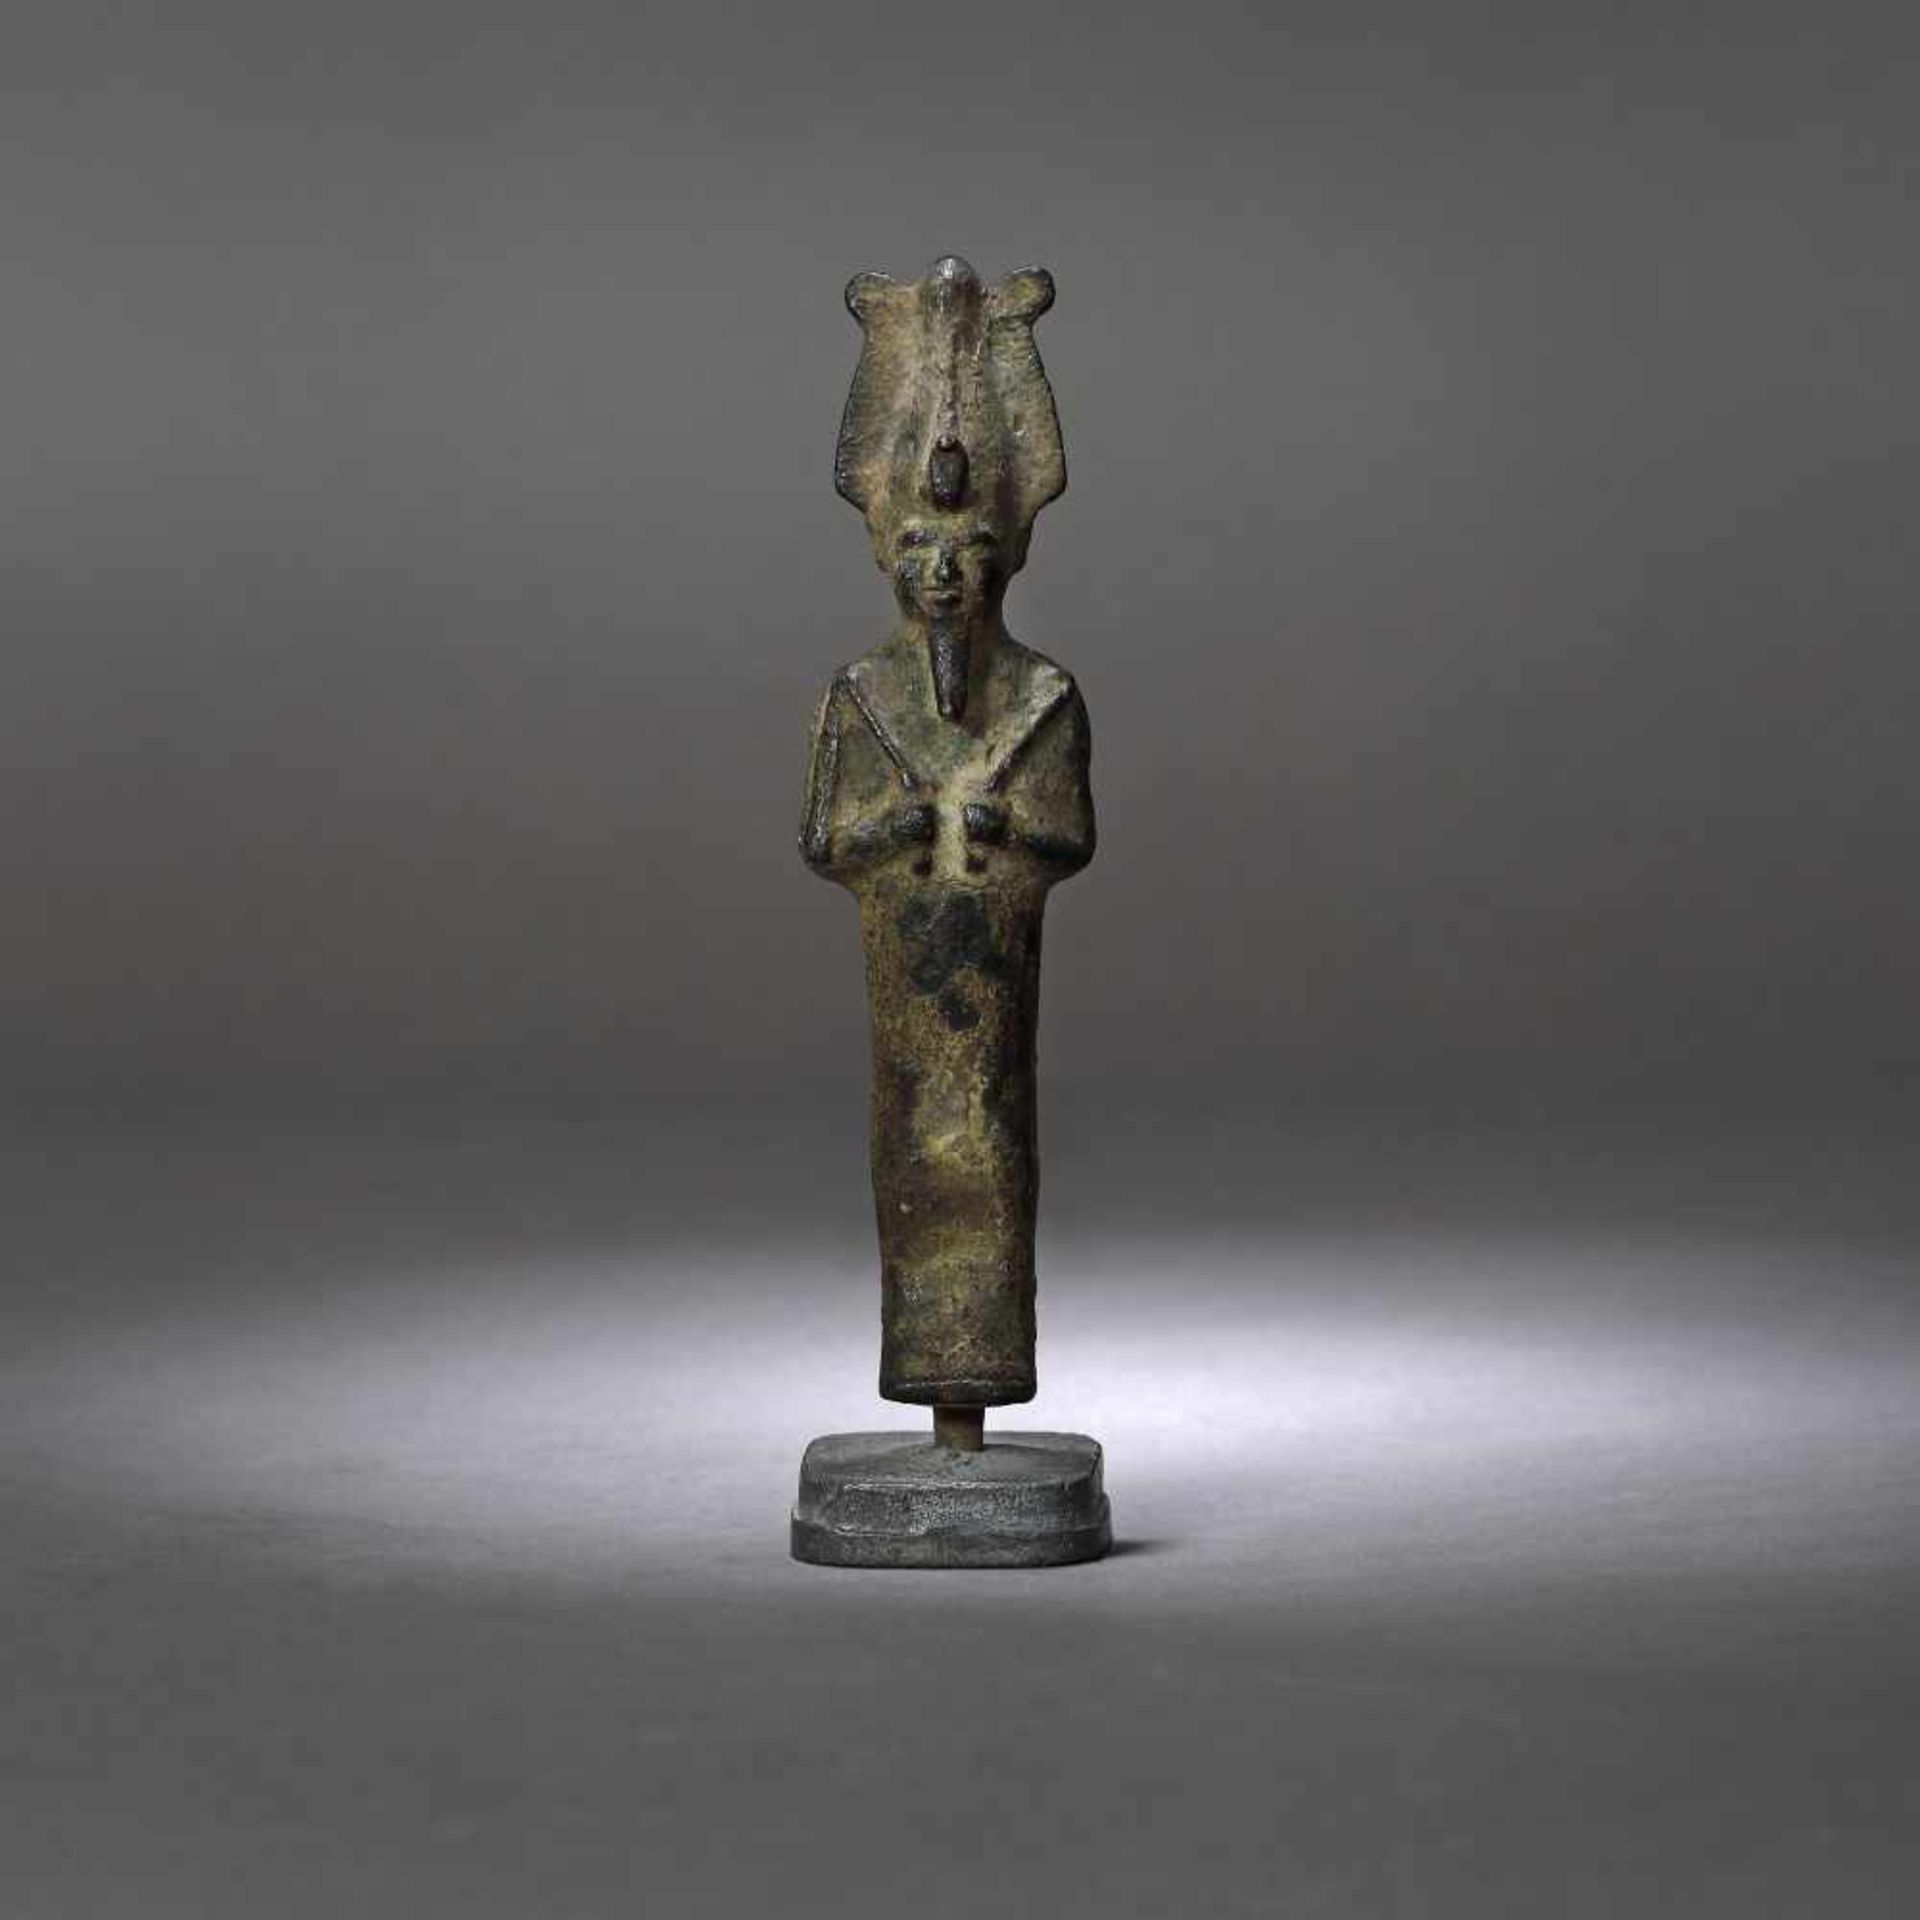 Egyptian bronze statuette, representing Osiris (god of life, afterlife and resurrection), probably t